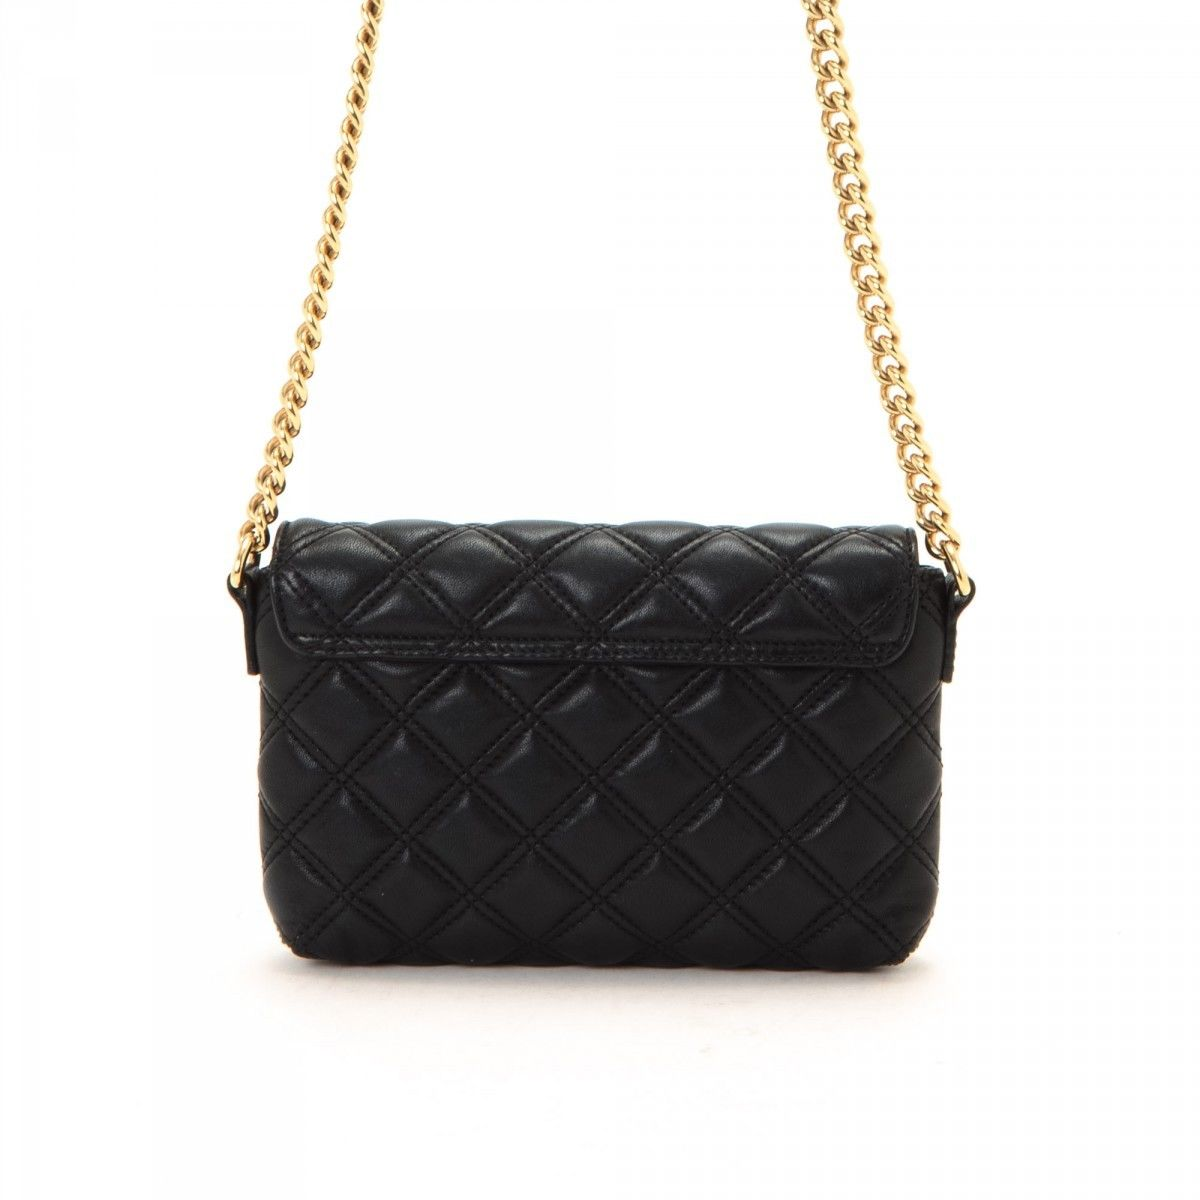 96c19893afb Marc Jacobs Single Quilted Chain Crossbody Bag Leather - LXRandCo ...